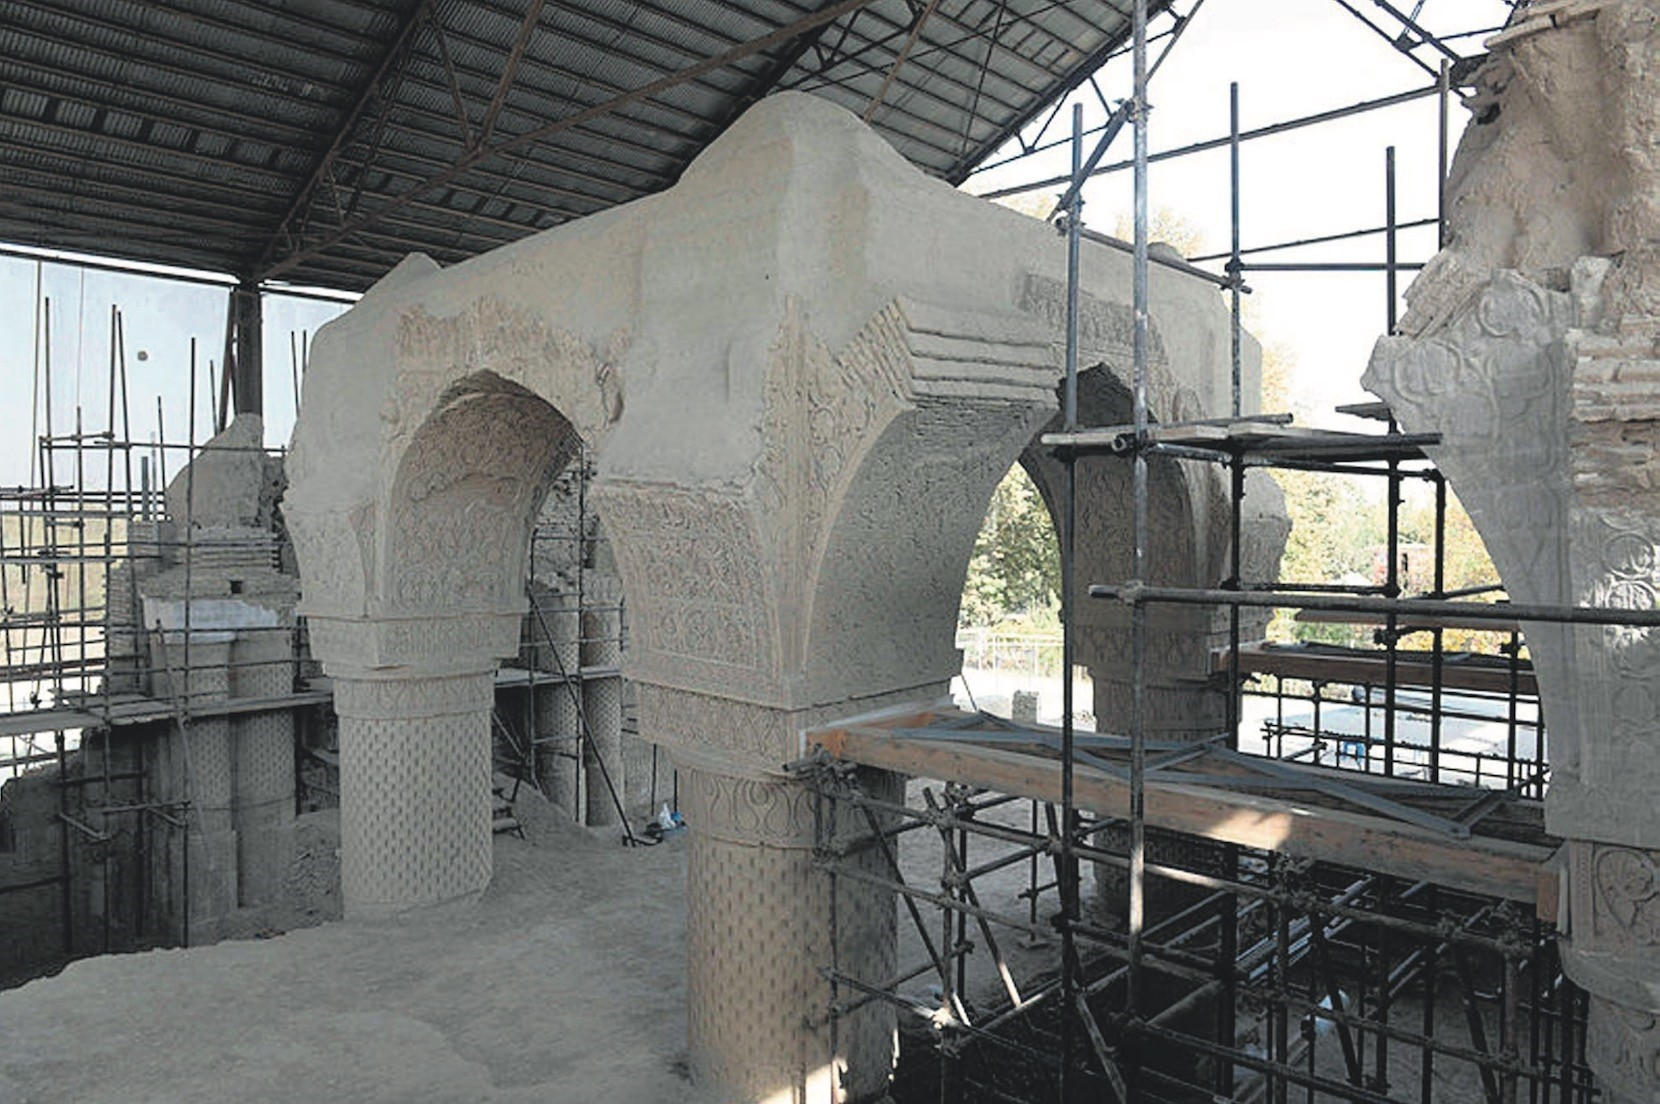 Archeologists and conservationists seek to unravel the secrets of the 9-Dome Mosque, also known as Noh Gonbad in Persian, in Balkh province of Afghanistan.